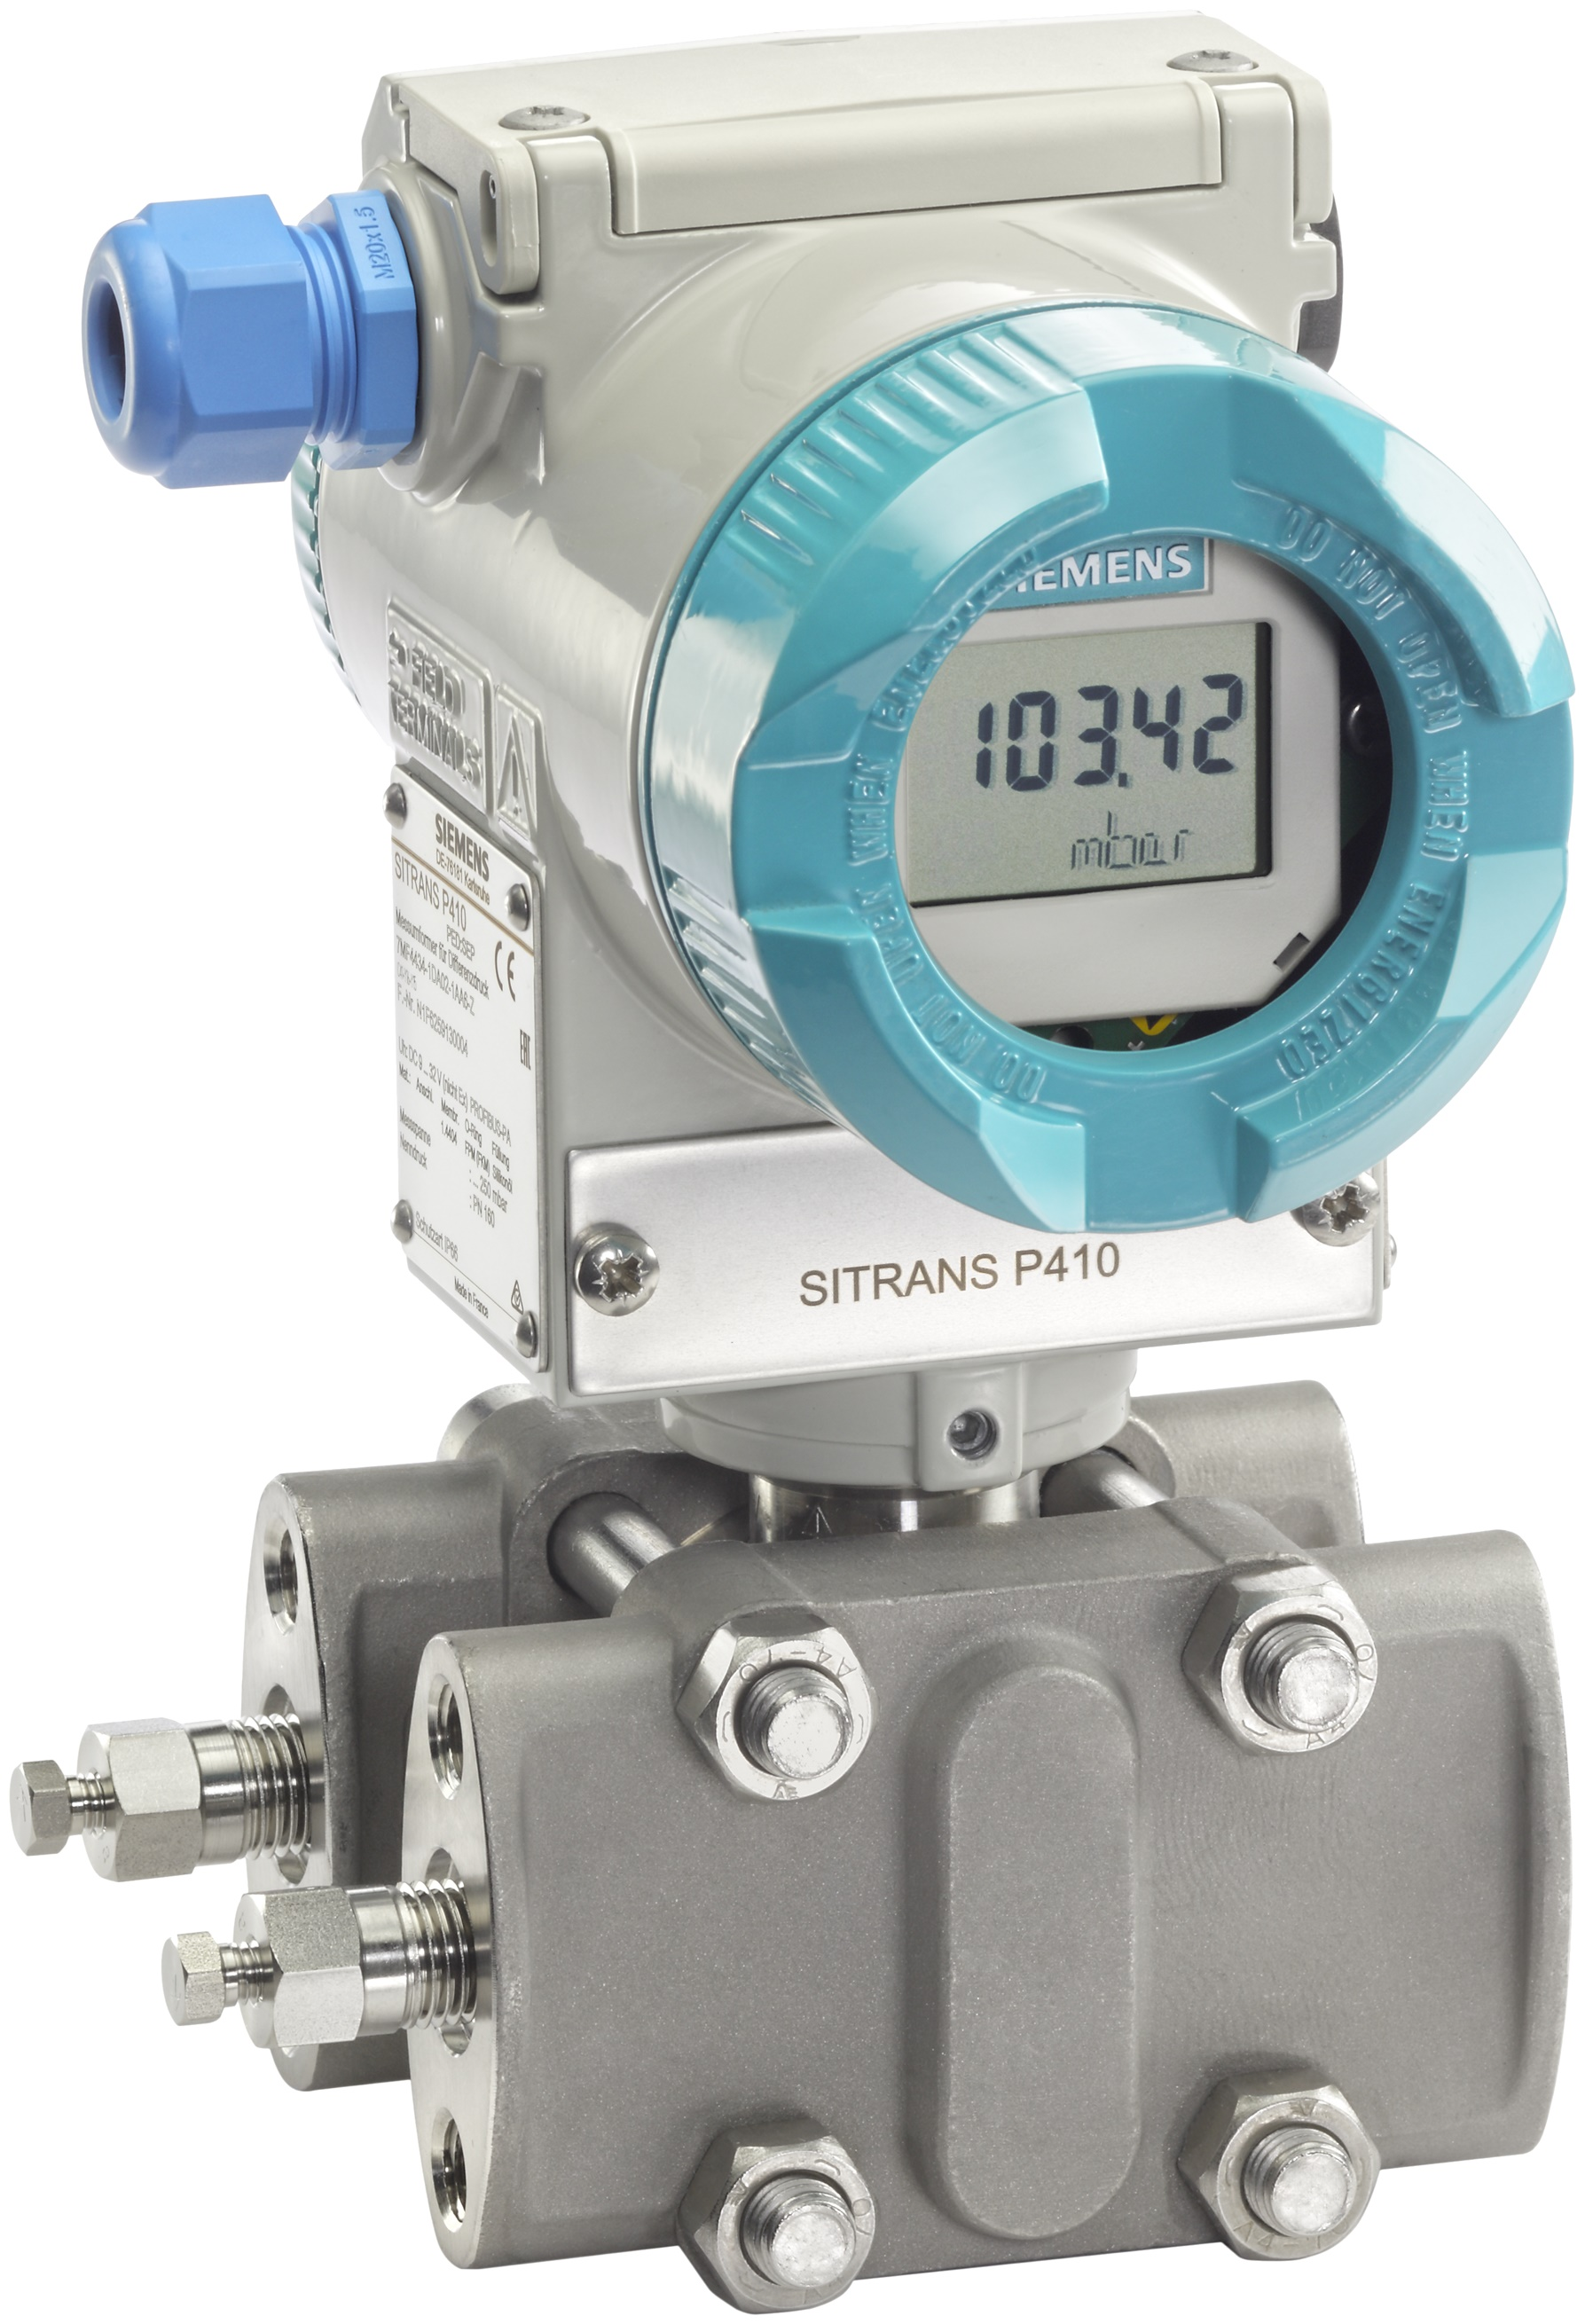 Digital Pressure Transmitter (P410) with support